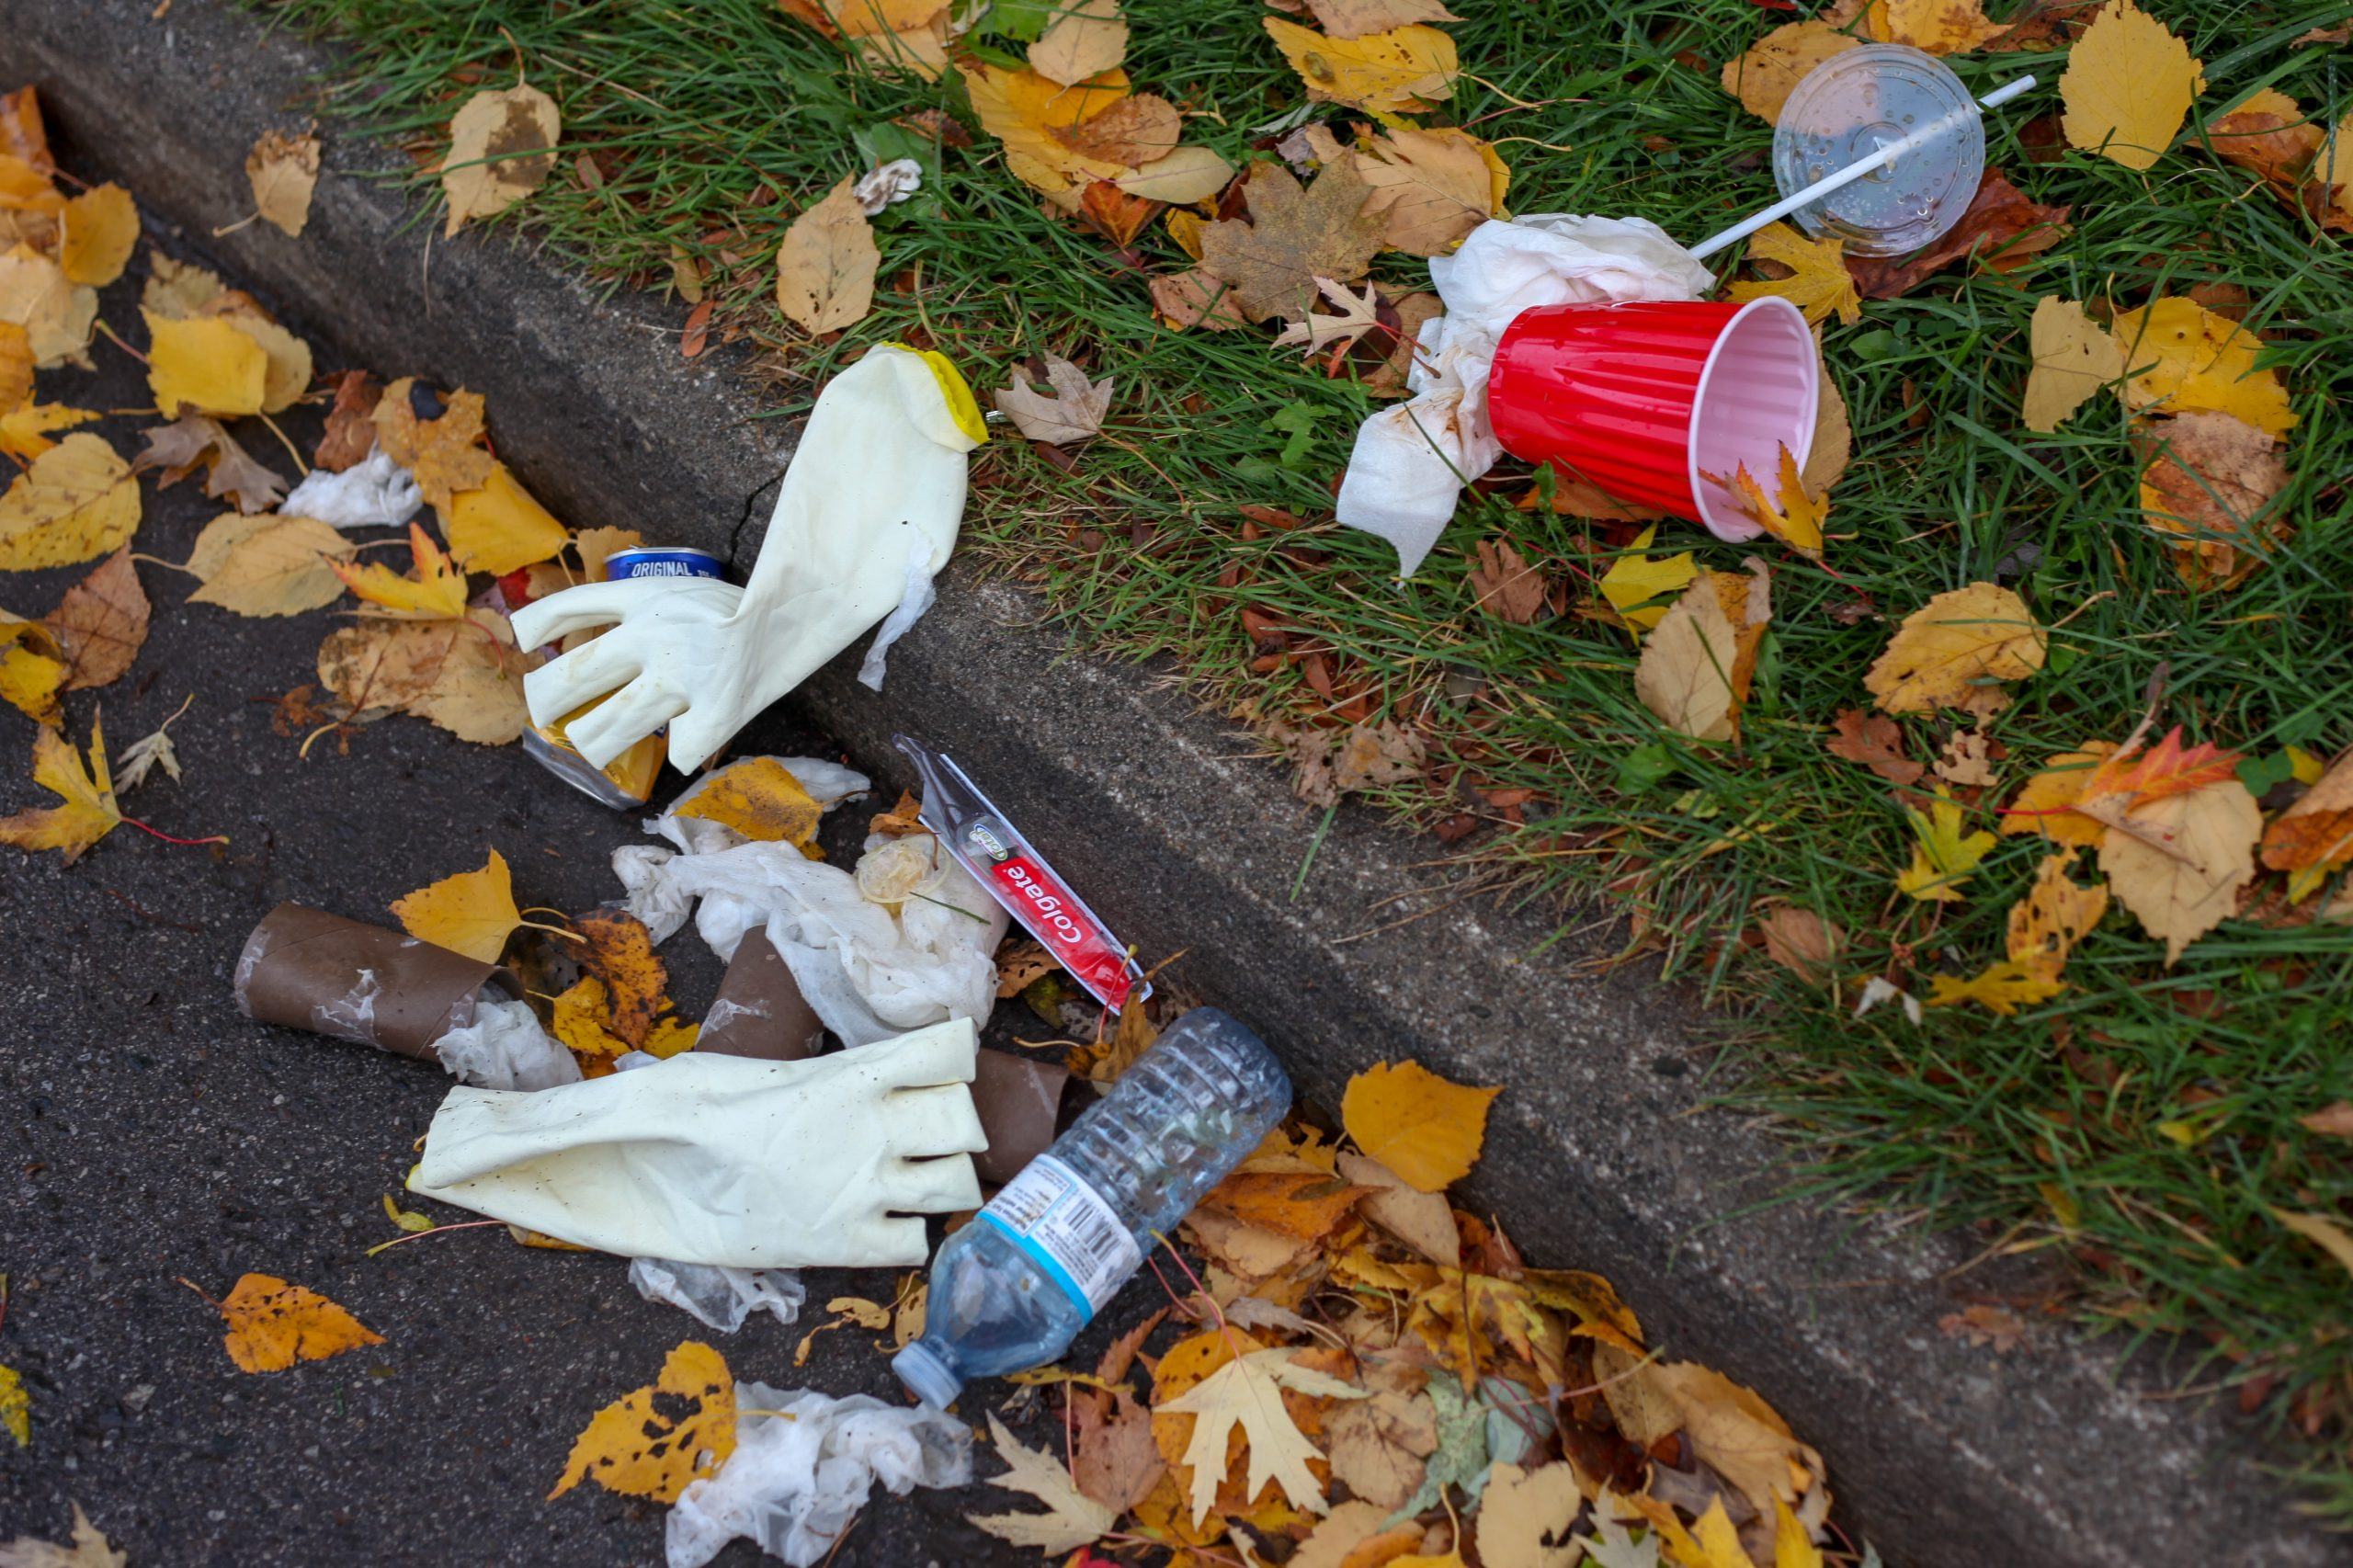 Trash on the Lawn, gloves, cup, waterbottle